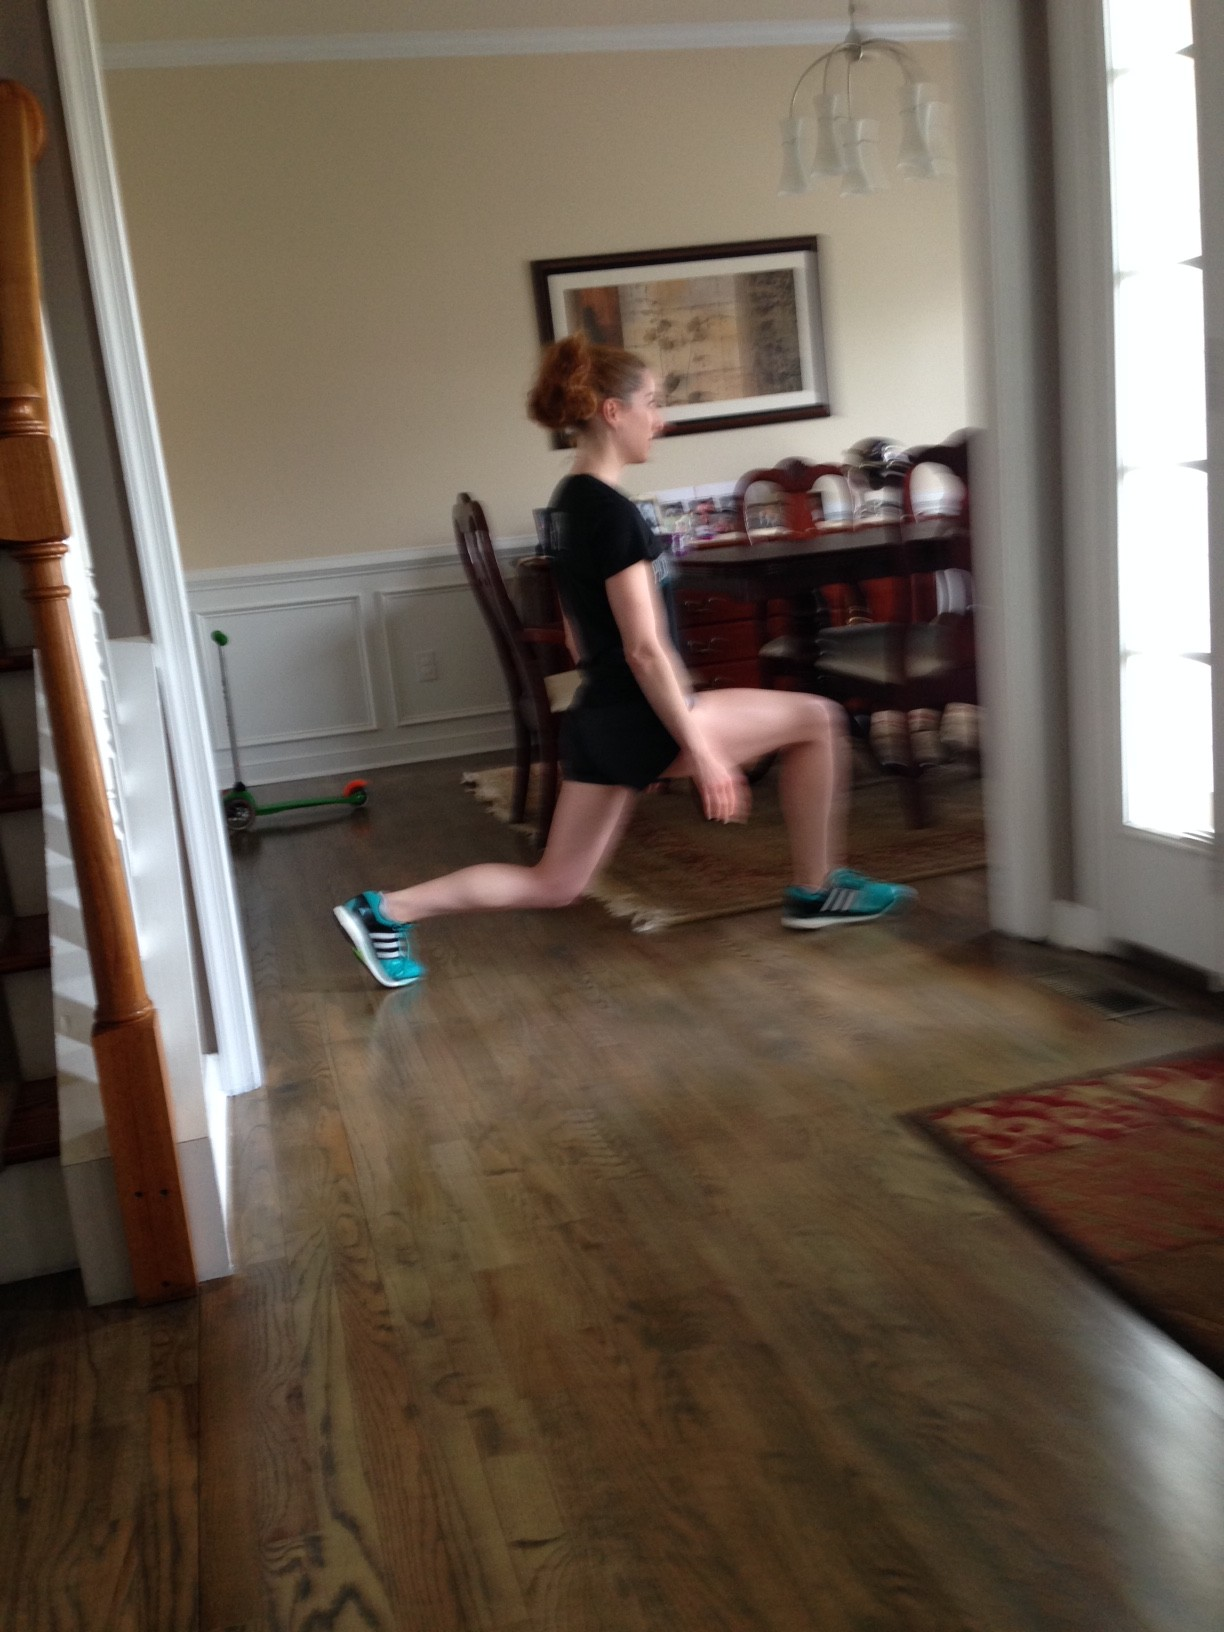 This is the position that causes the most pain - when the big toe is bent in lunges.  OUCH.  (blurry pic courtesy of my four year old)